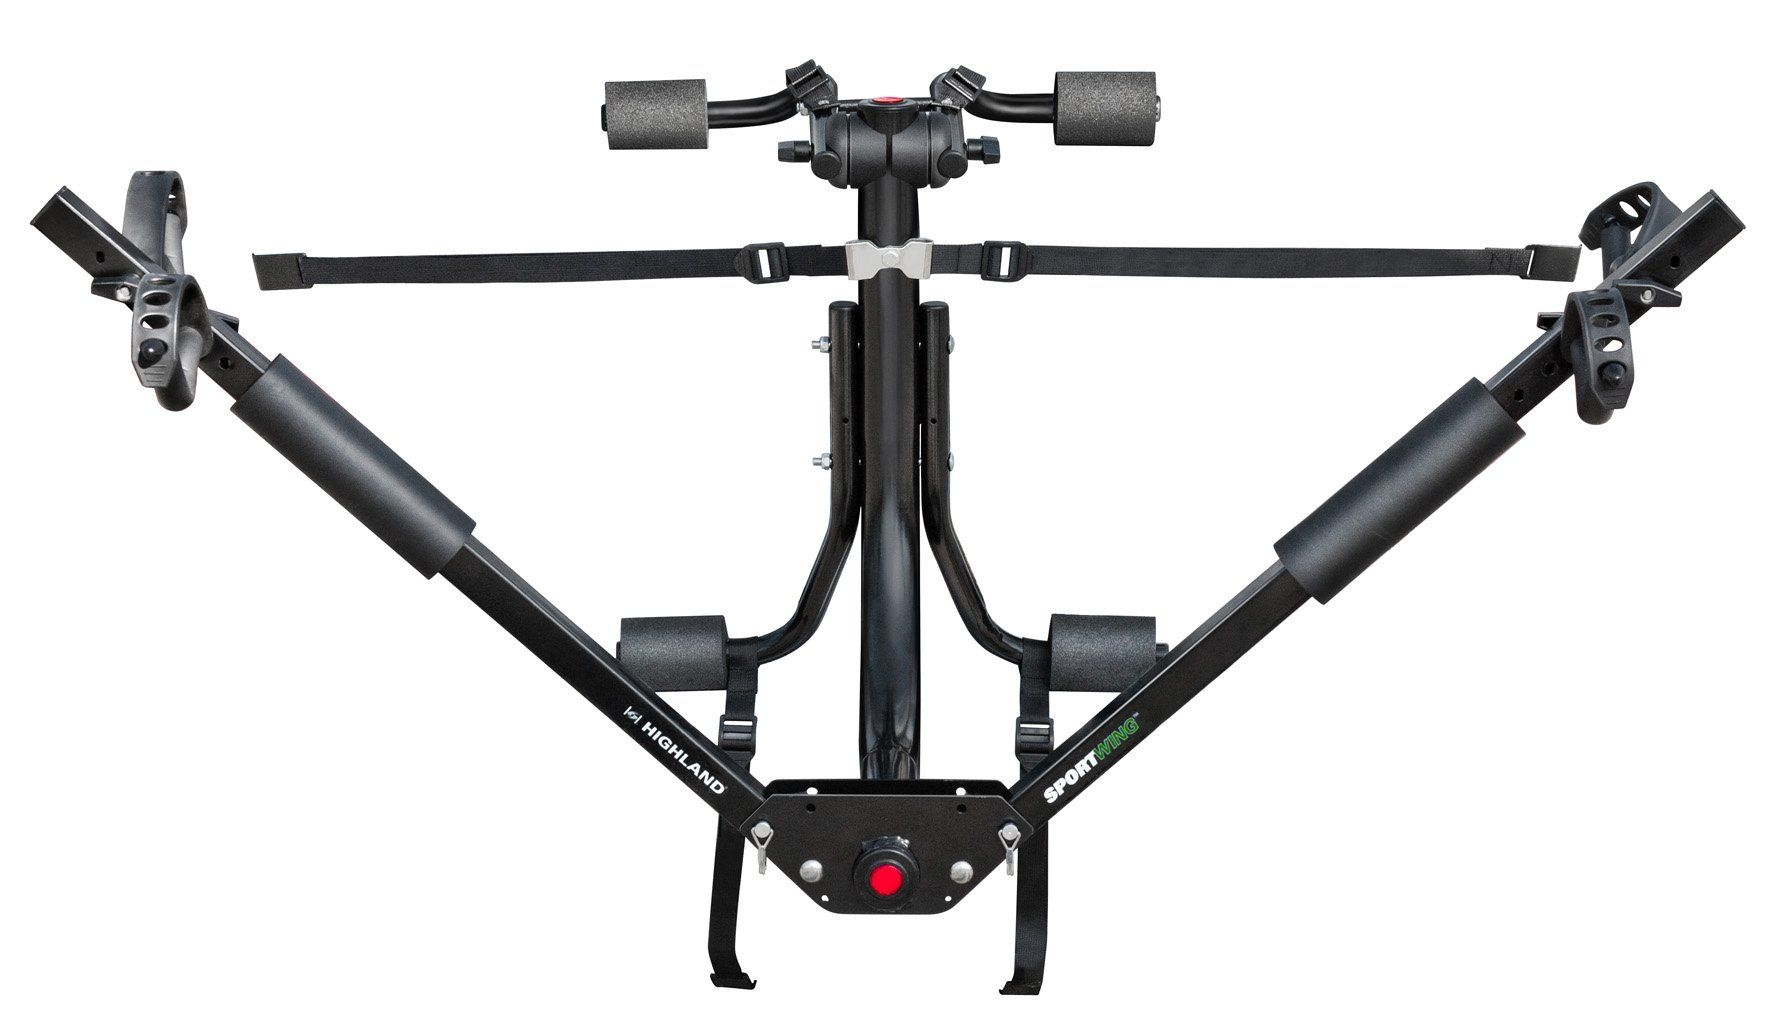 Highland 1378000 Sportwing Trunk Mount Bike Rack Holds Two Bikes Any Shape And Style Adjustable To Fit Both A Trunk Mount Bike Rack Bike Rack Car Bike Rack